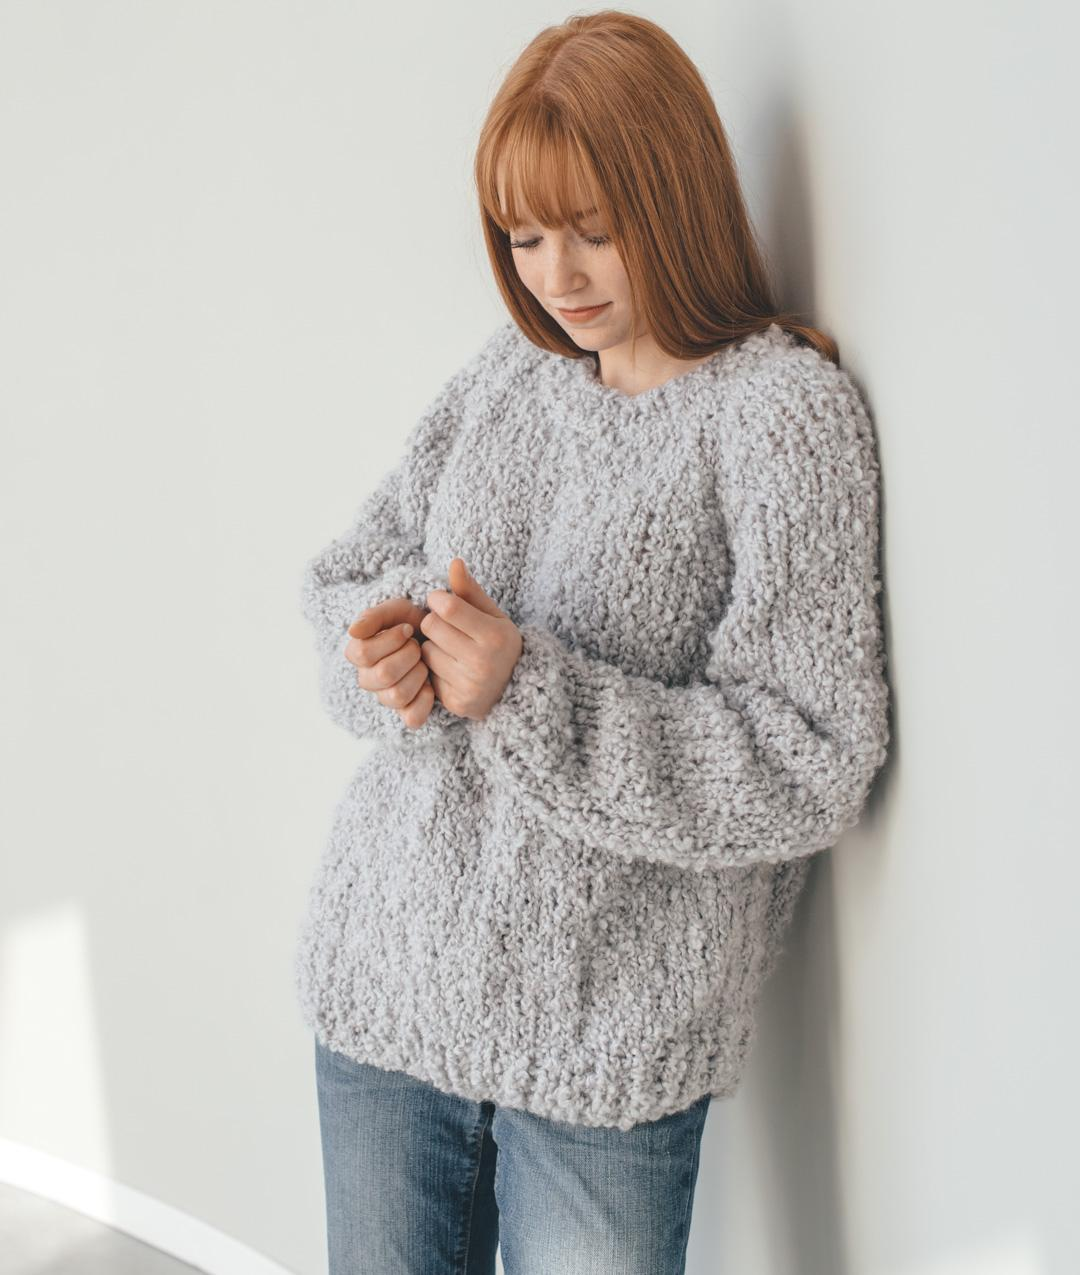 Maglie e Top - Lana - WINTER HOLIDAY JUMPER - 1